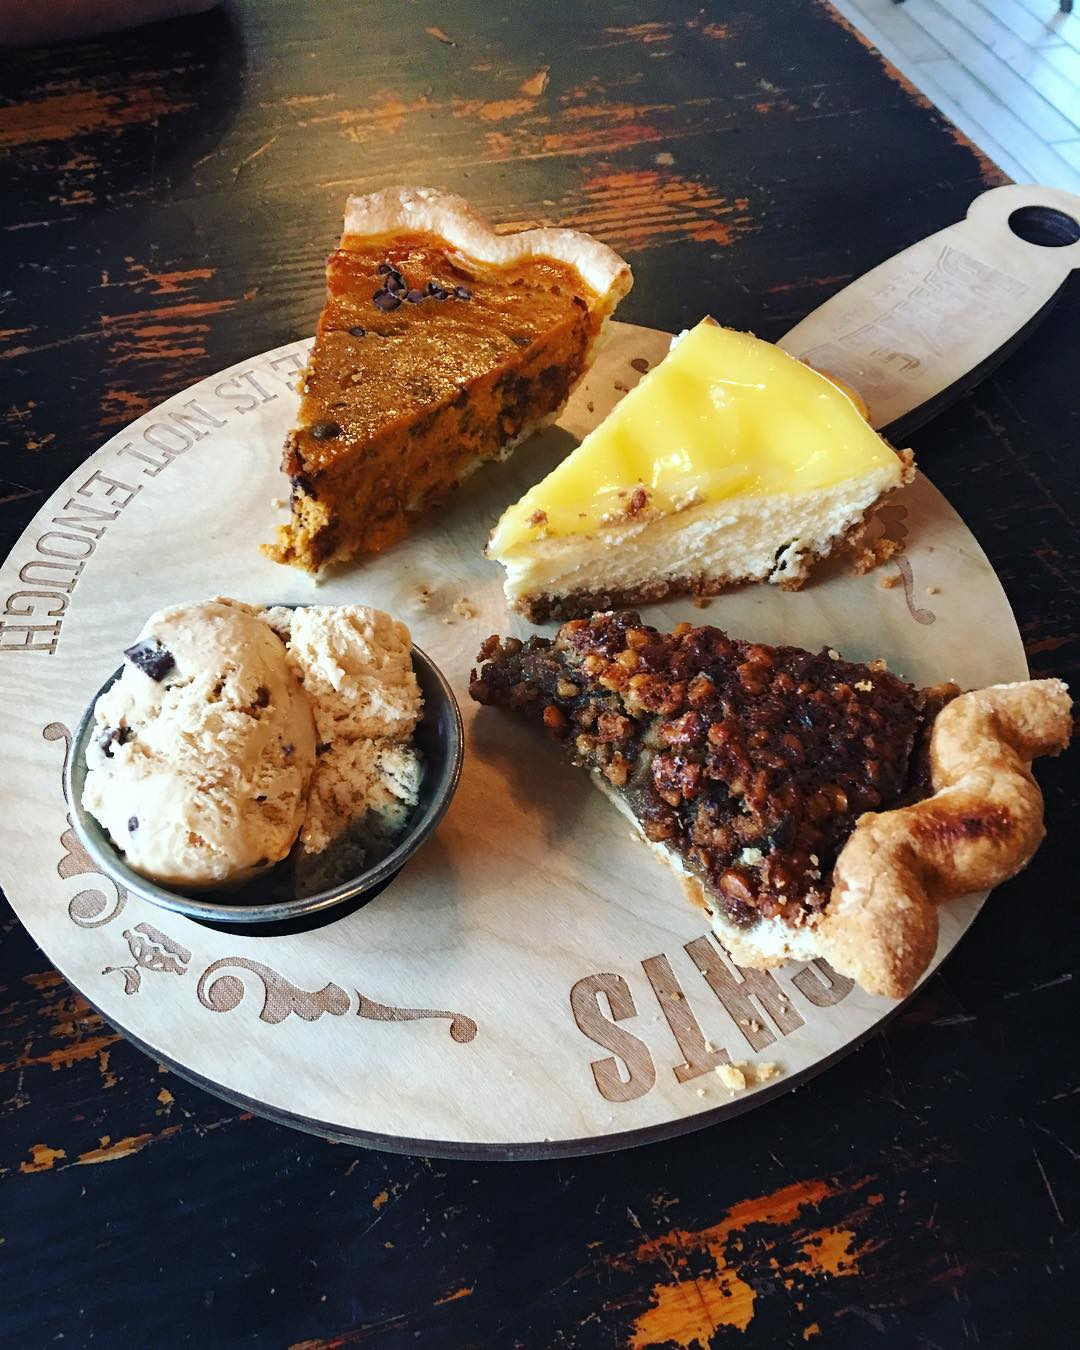 Asheville Restaurants - Baked Pie Company - Original Photo